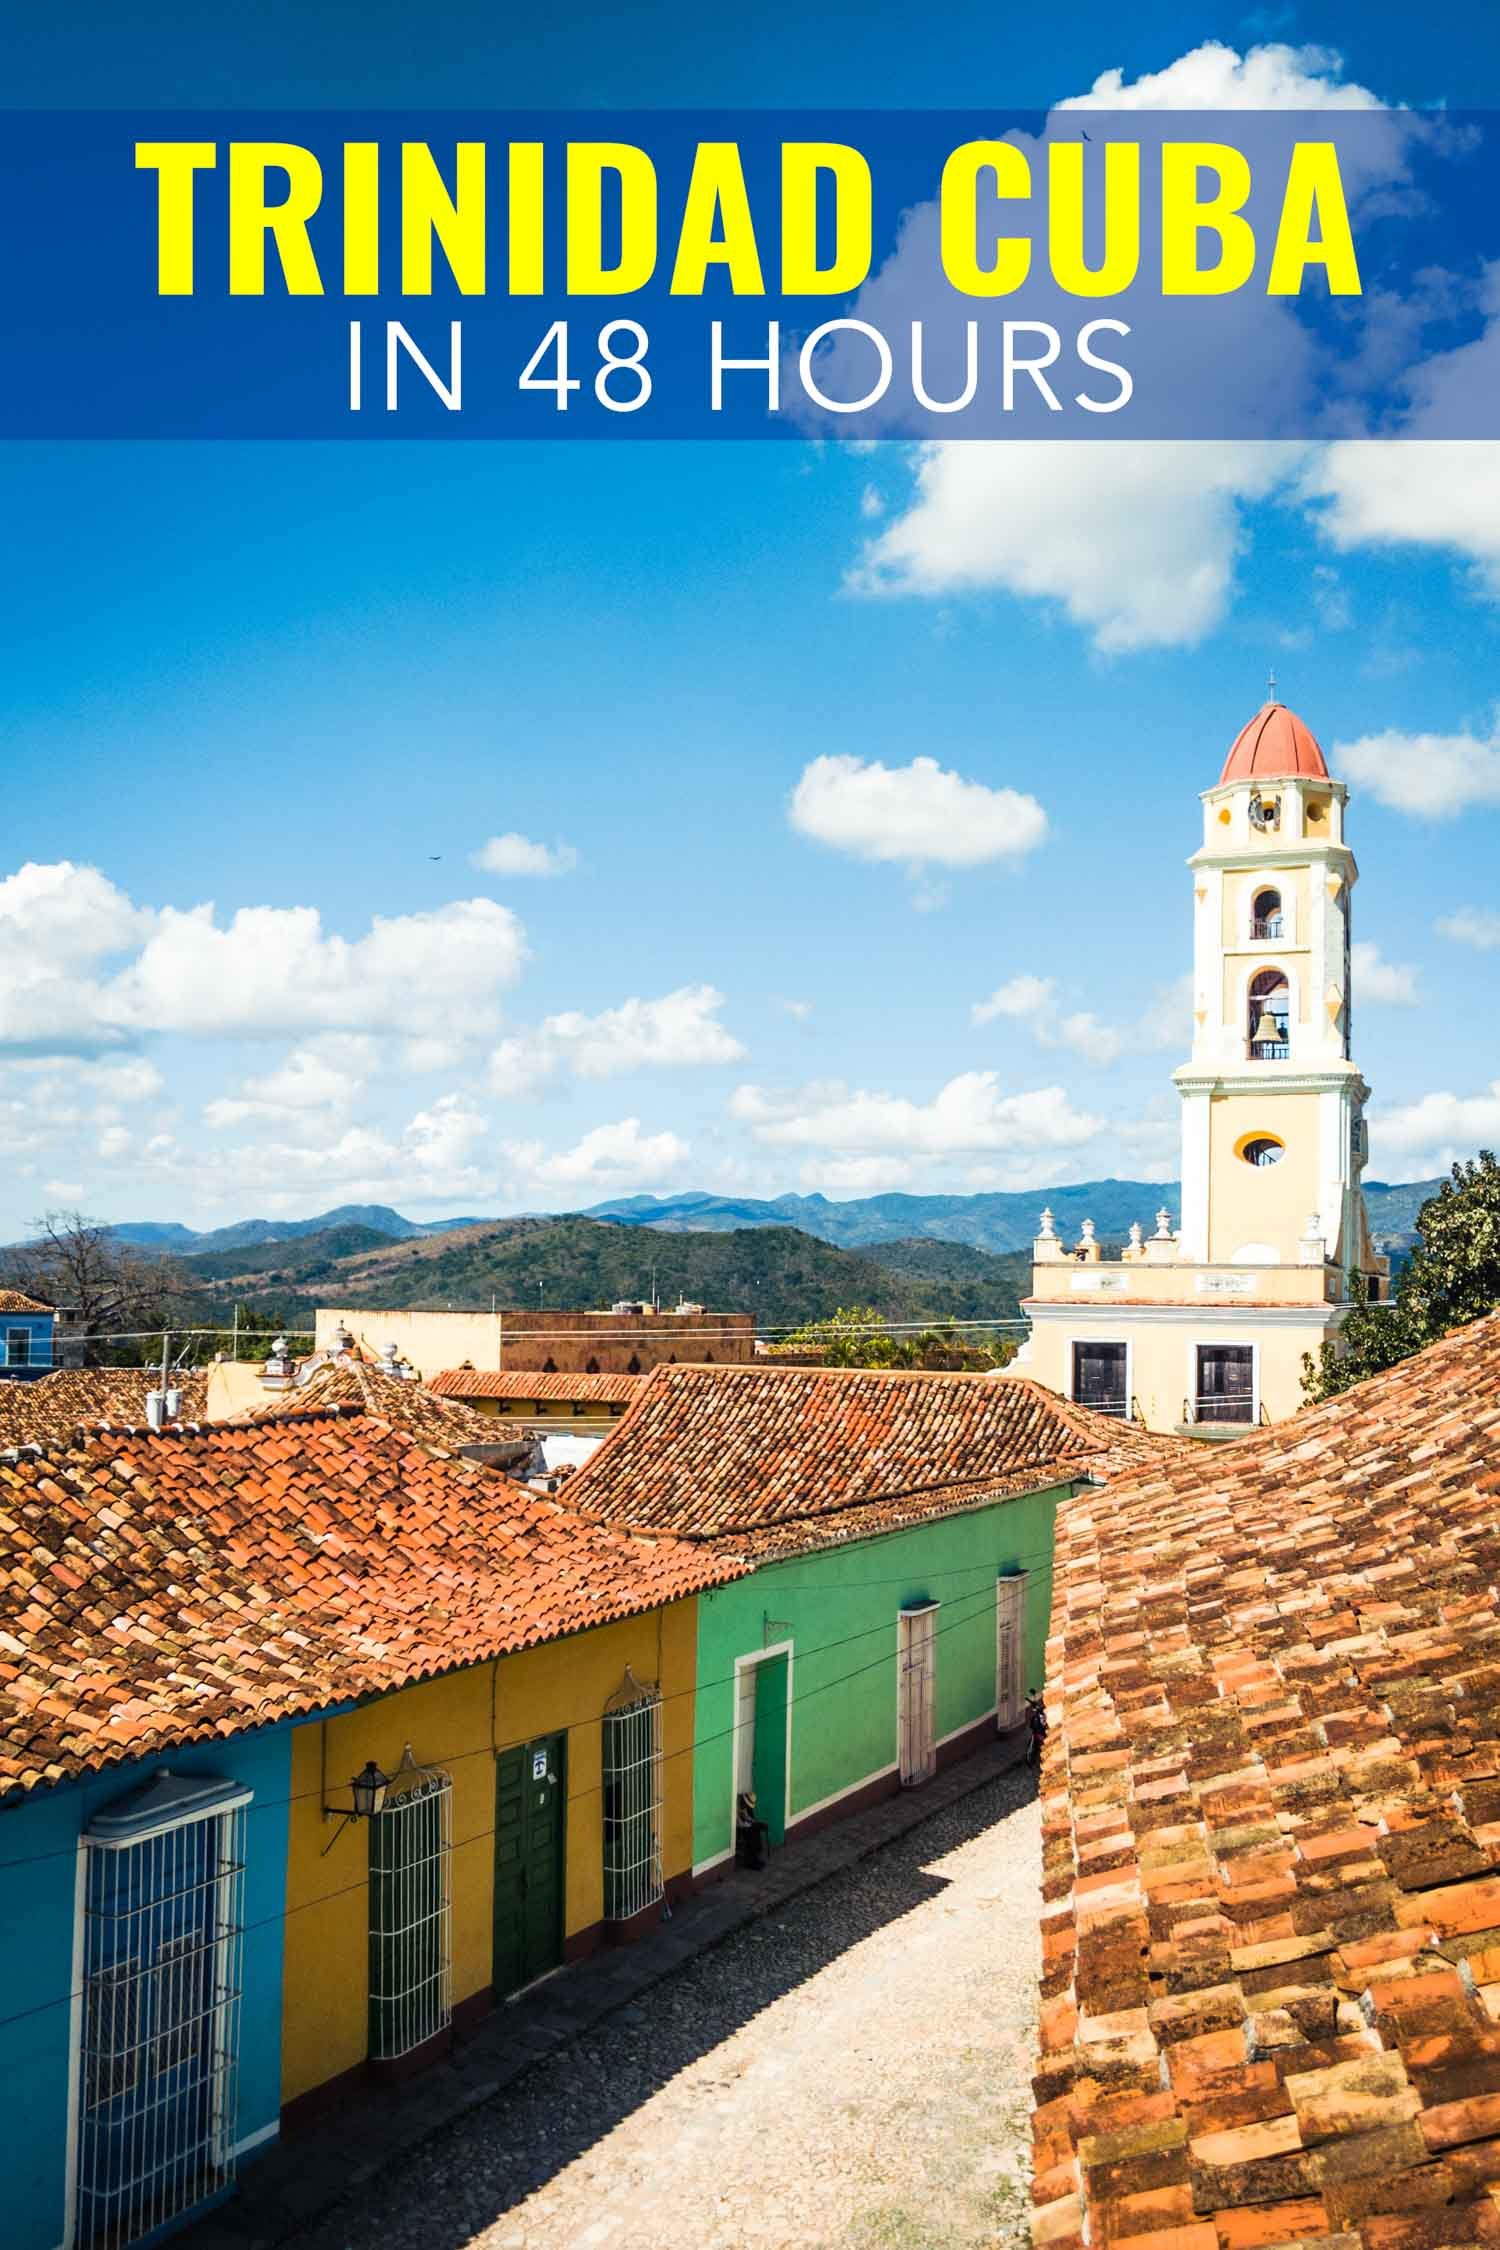 Trinidad Cuba, here's what to see and do in Trinidad in two days.